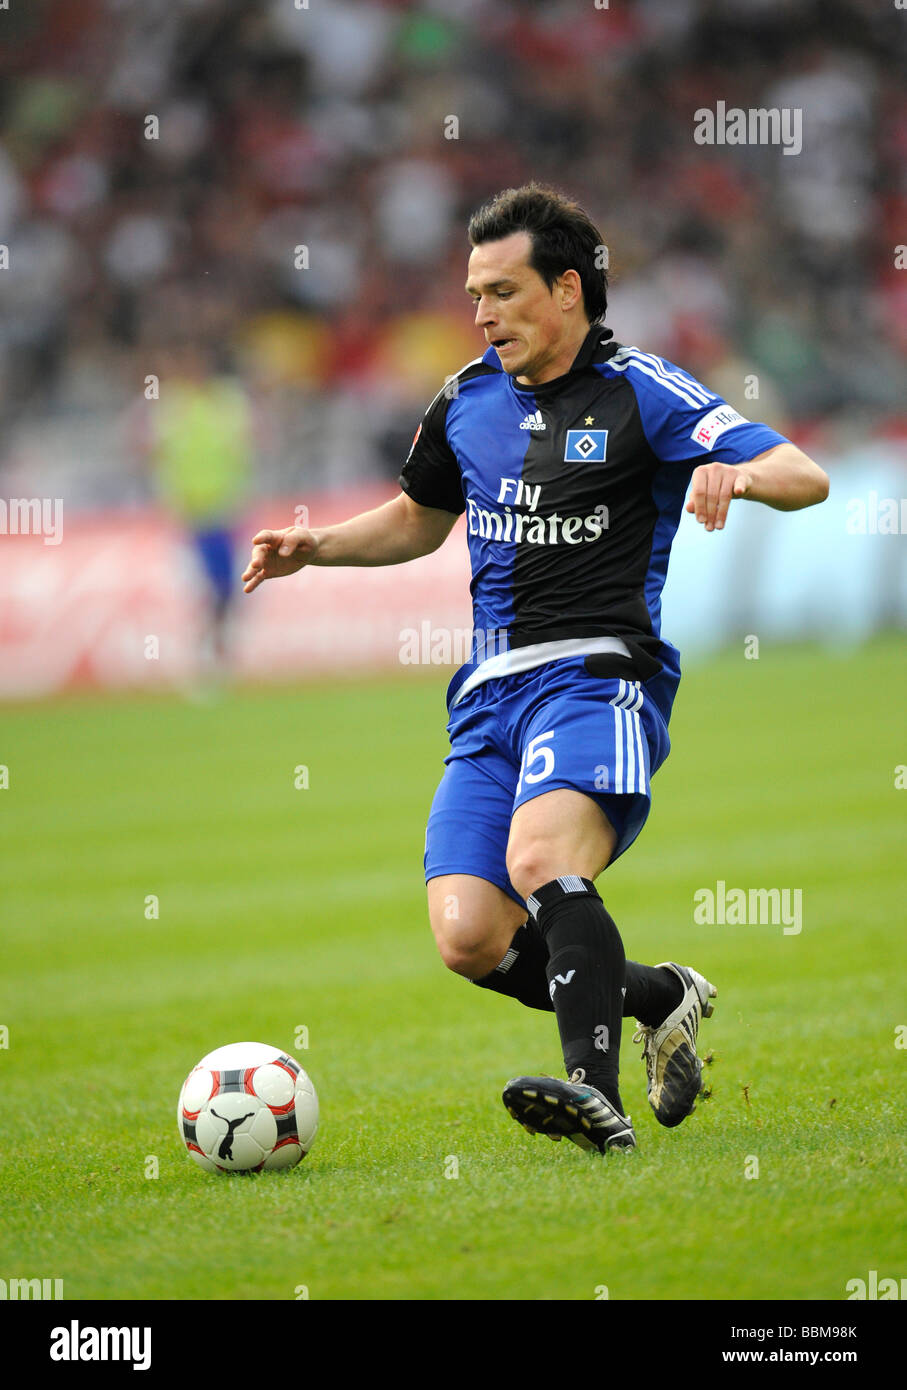 International Piotr Trochowski, German footballer playing for HSV, Hamburger SV, on the ball - Stock Image